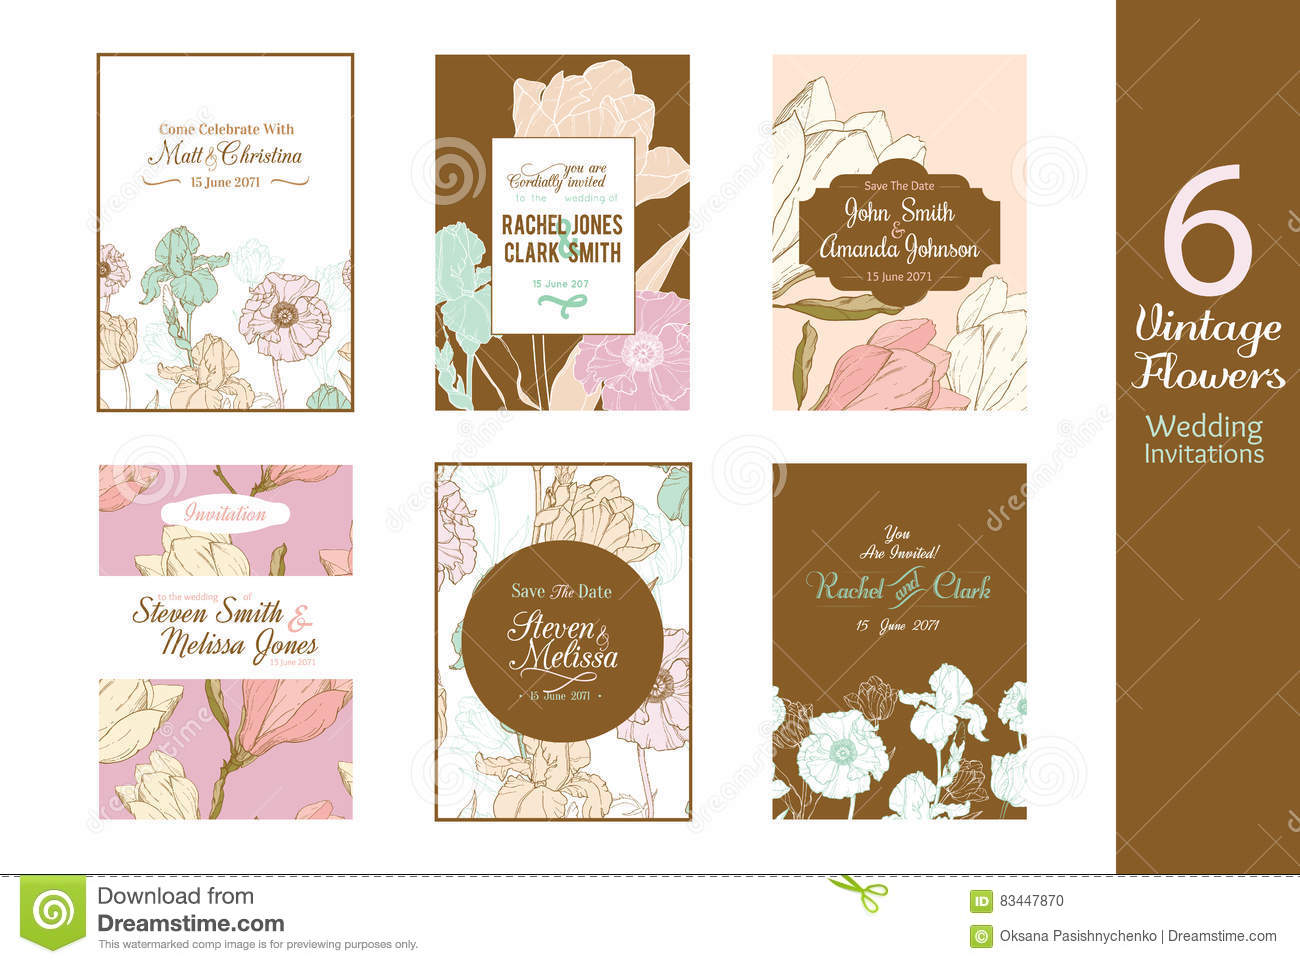 Six Unique Vintage Floral Wedding Invitations, Save The Date Cards ...